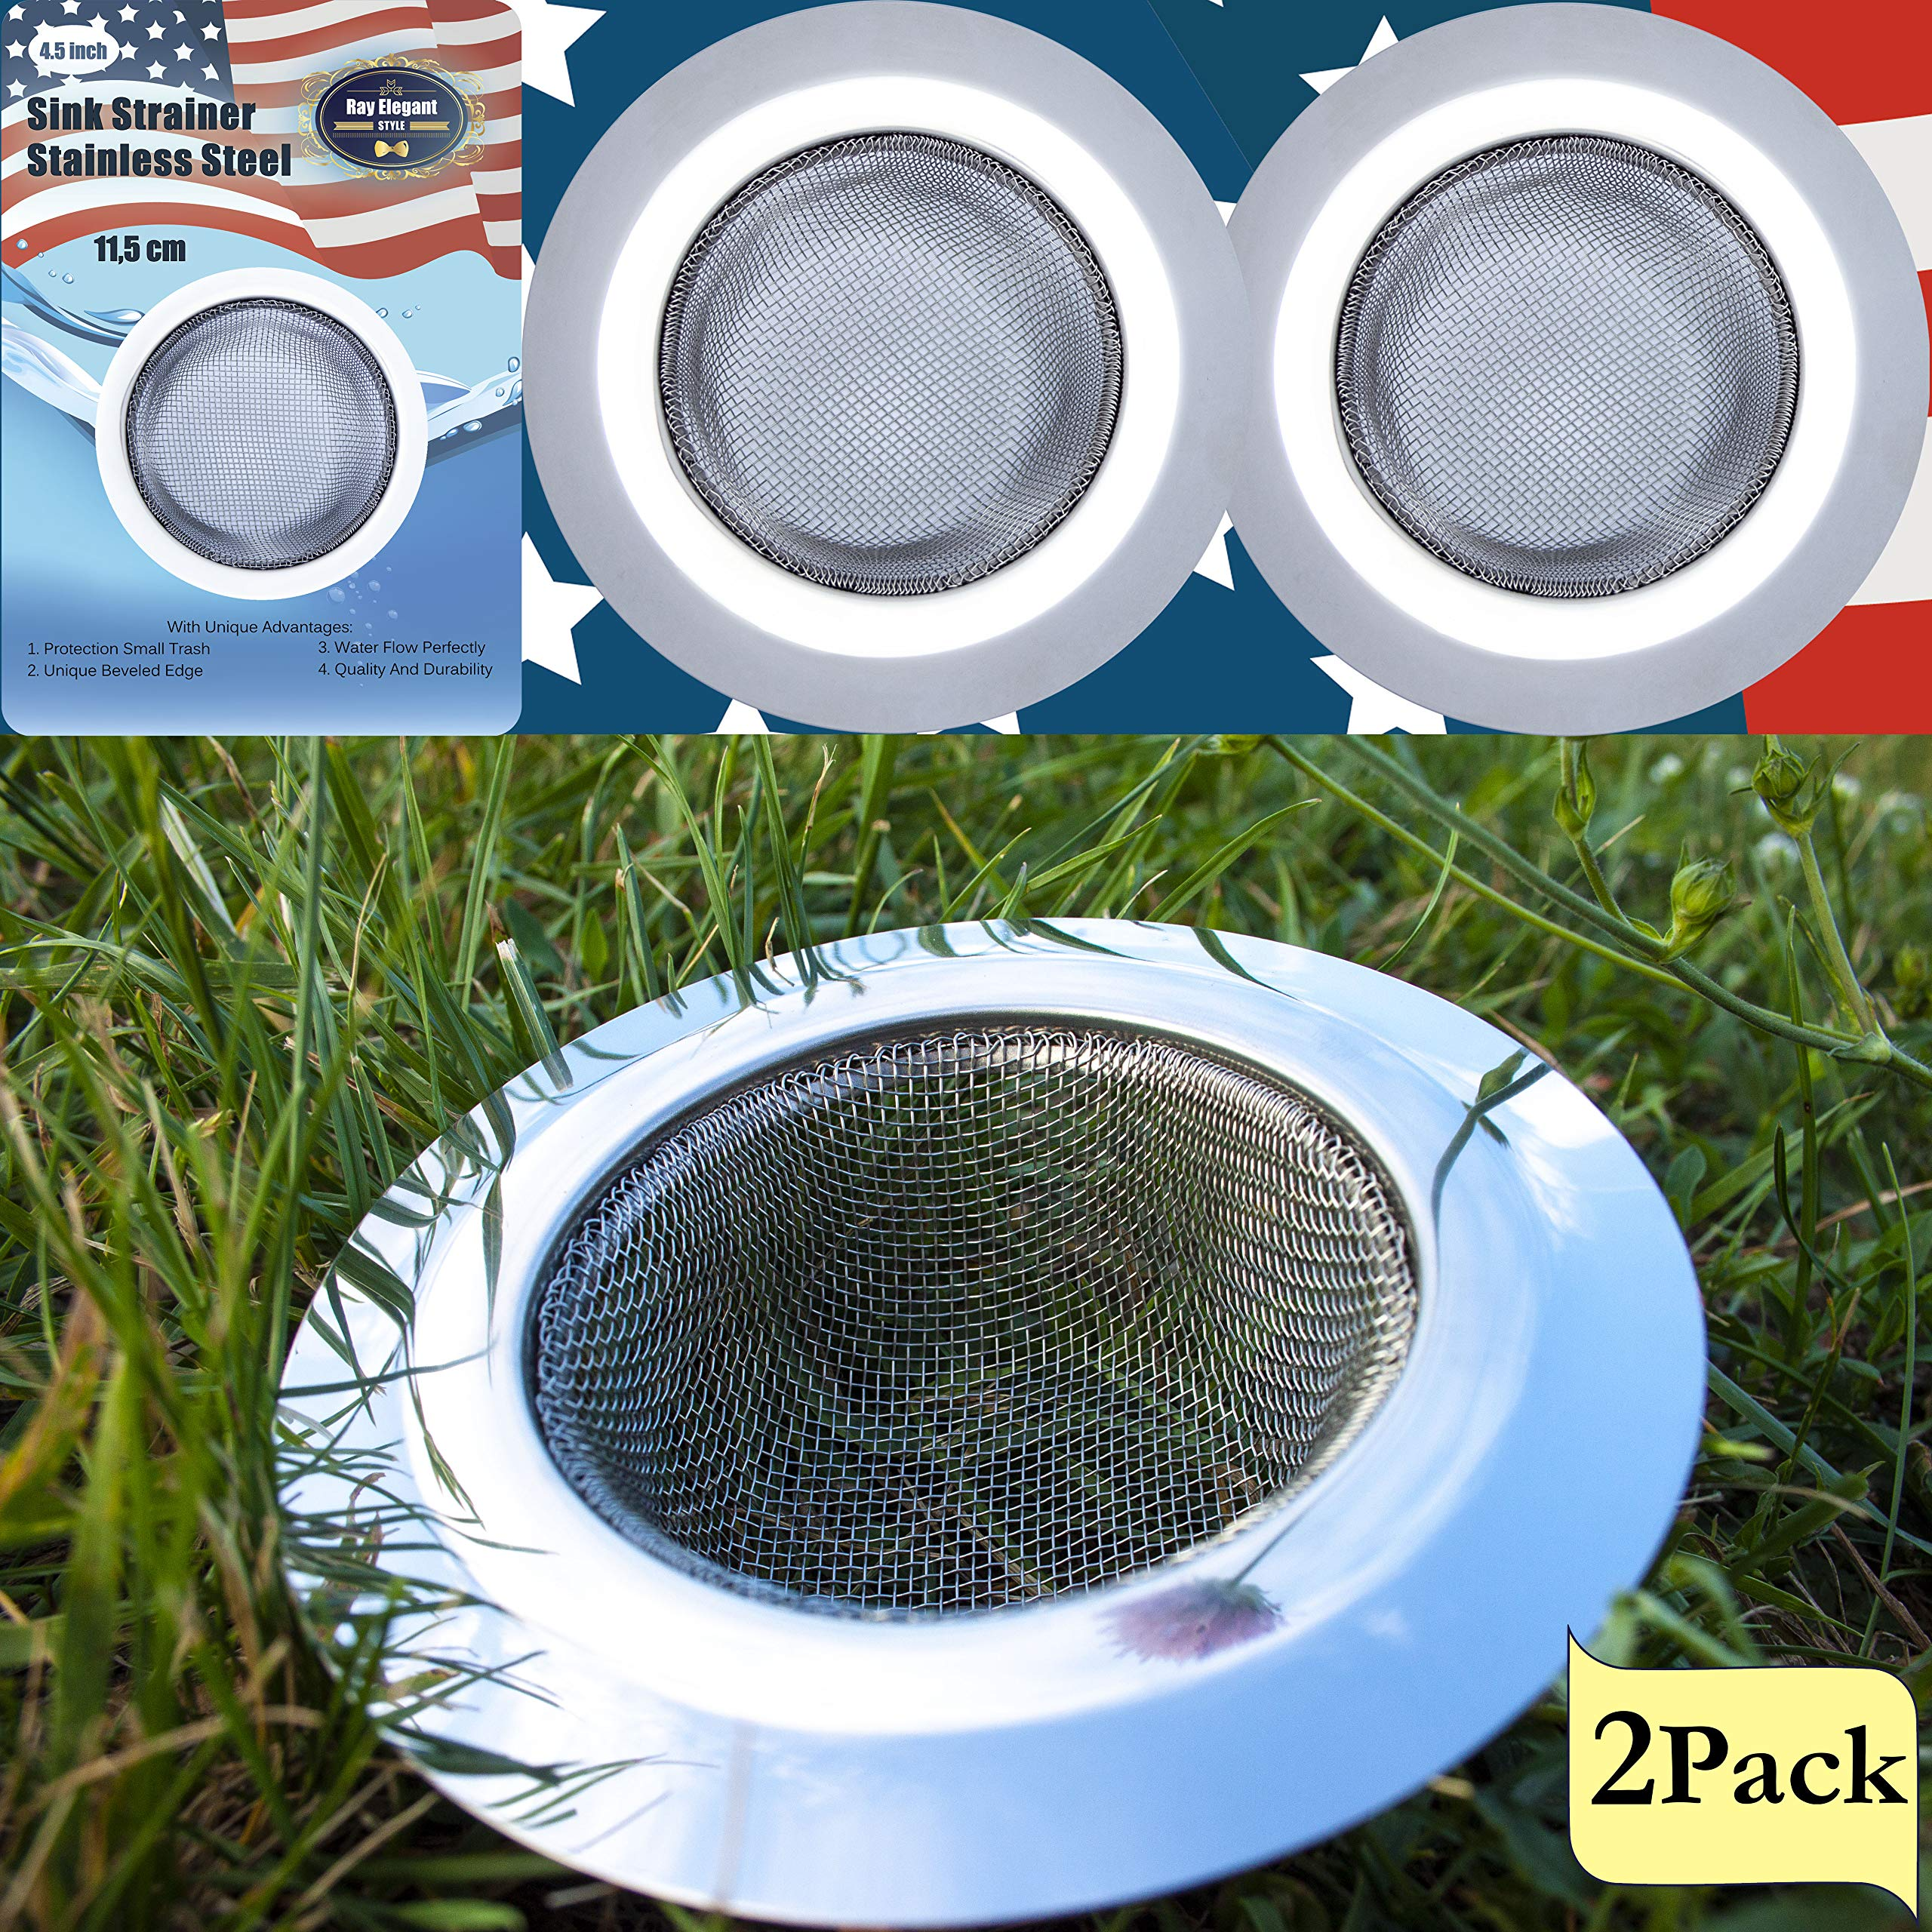 Kitchen Sink Strainer - 2 PC Stainless Steel Sink Strainer 4.5'' - Strong, Clean, Reliable Stainless Steel Prevent Rust, Edges Not Sharp, Deep Mesh, Quick Outflow - Outer 4.5'' x Inner 2.75'' x Deep 1.5'' by RE-Style (Image #2)